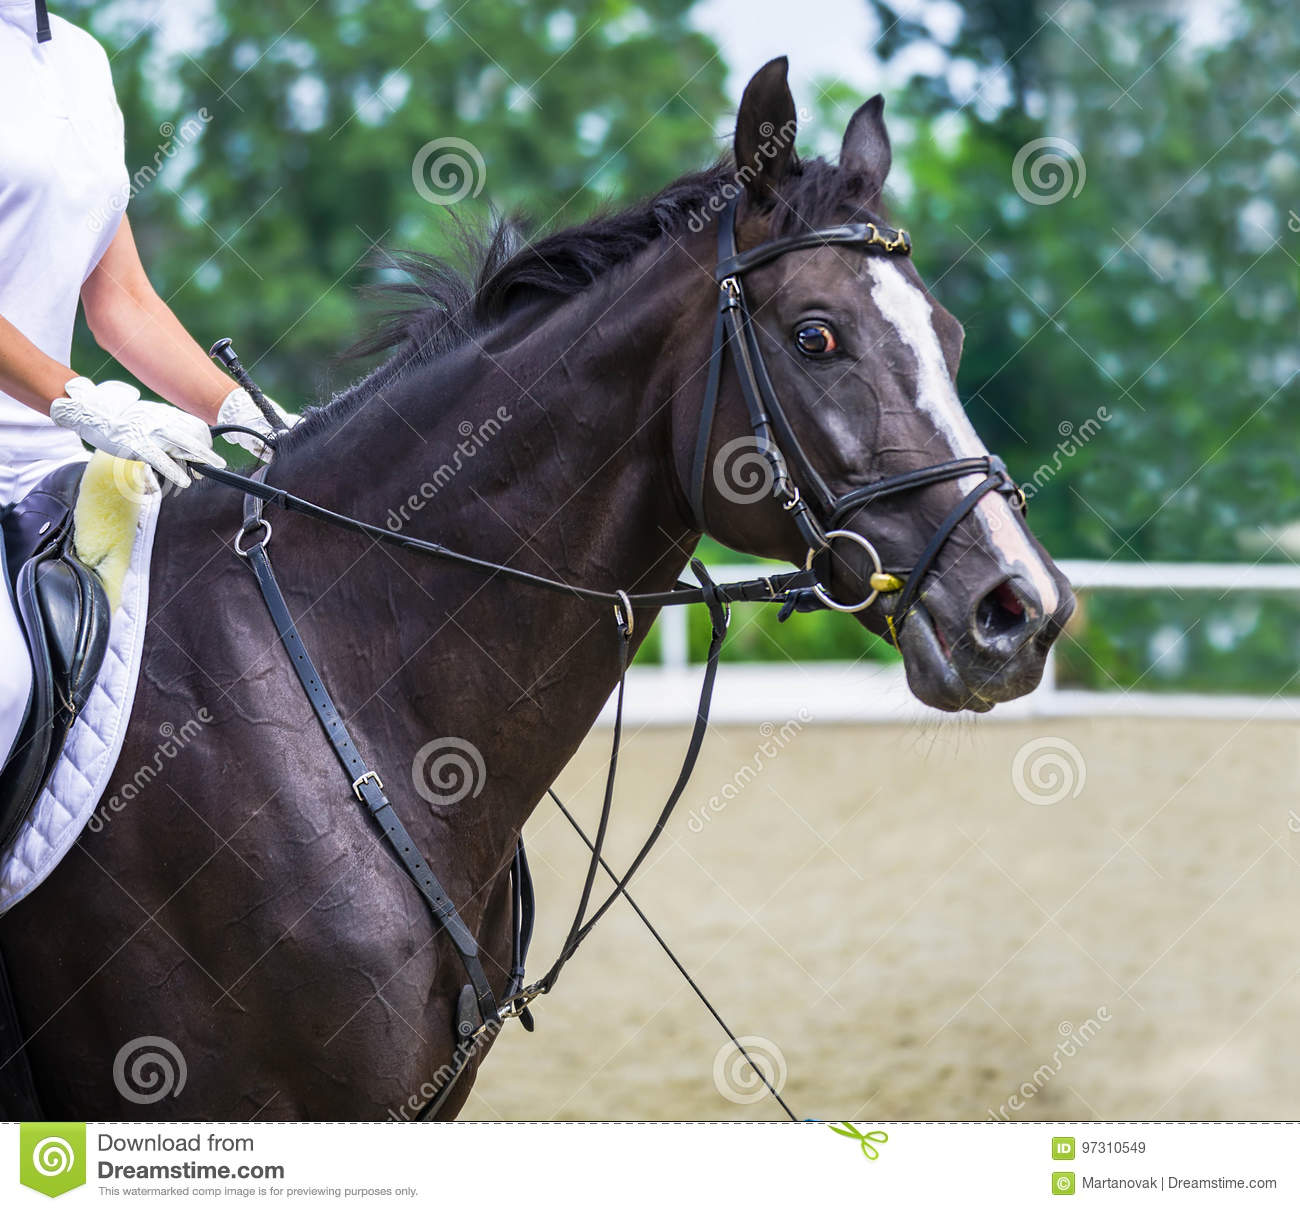 Glossy Black Horse Portrait During Dressage Competition Show Jumping Surfaces Stock Image Image Of Jumping Human 97310549